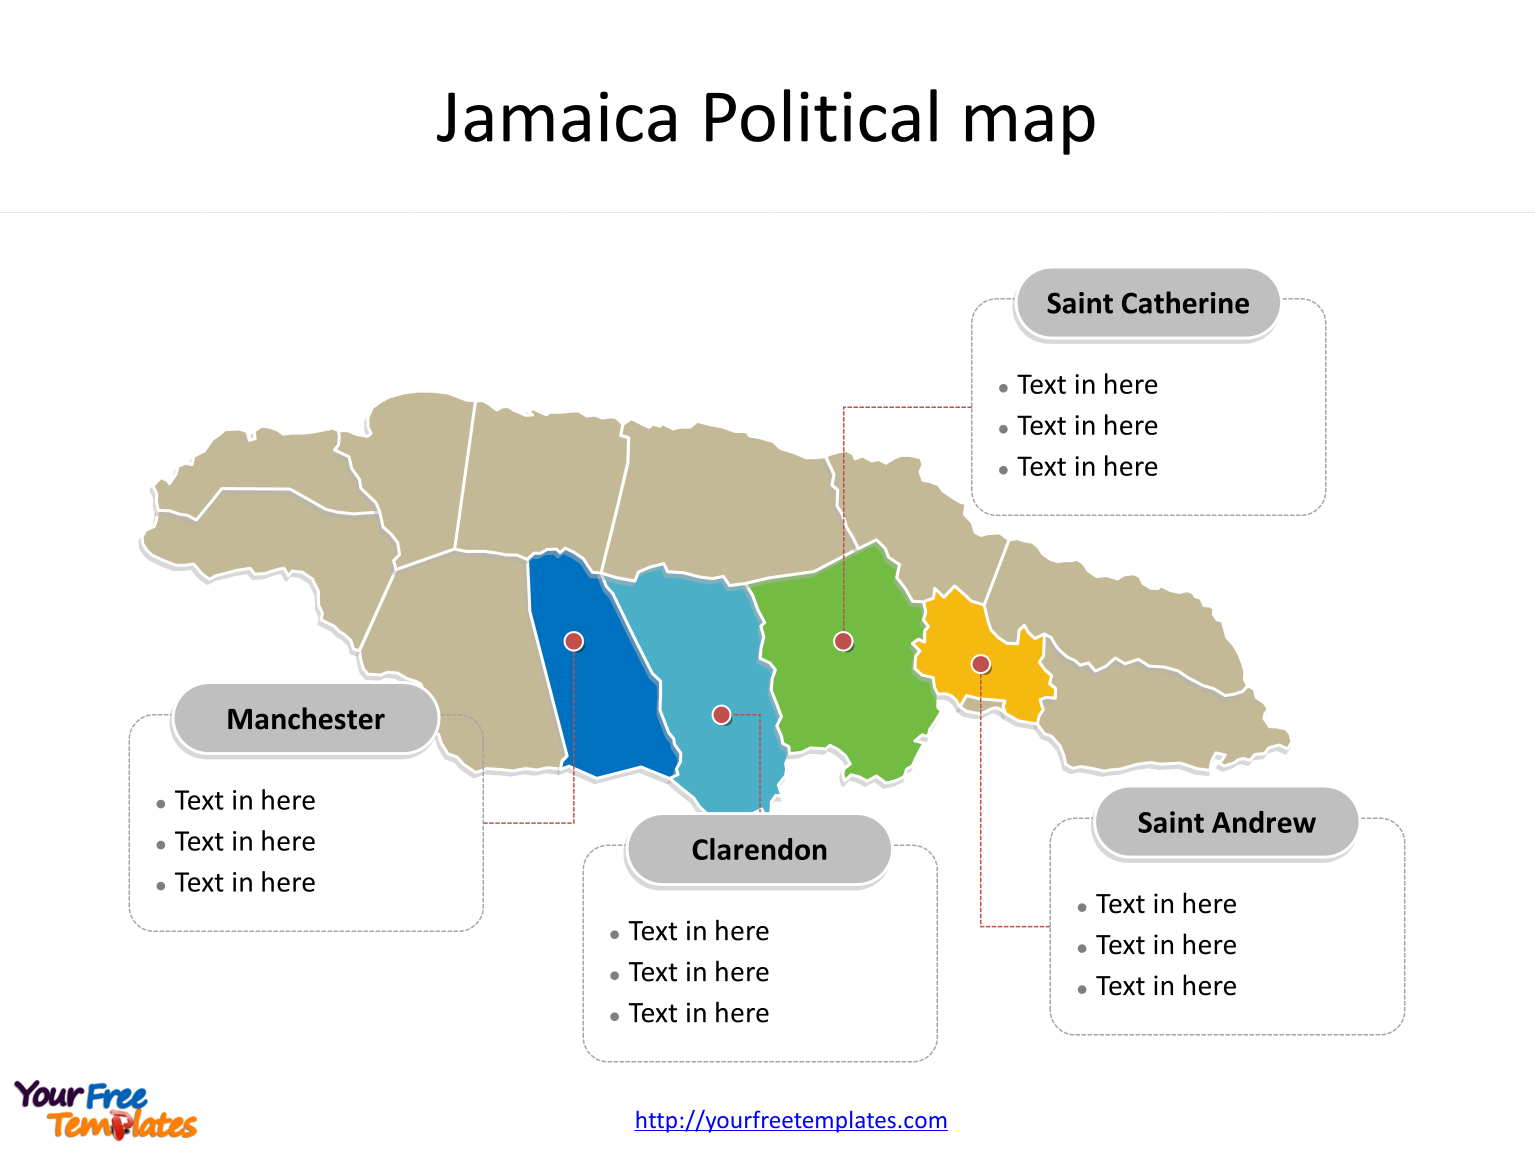 Map of Jamaica with political division and major Parishes labeled on the Jamaica map blank templates